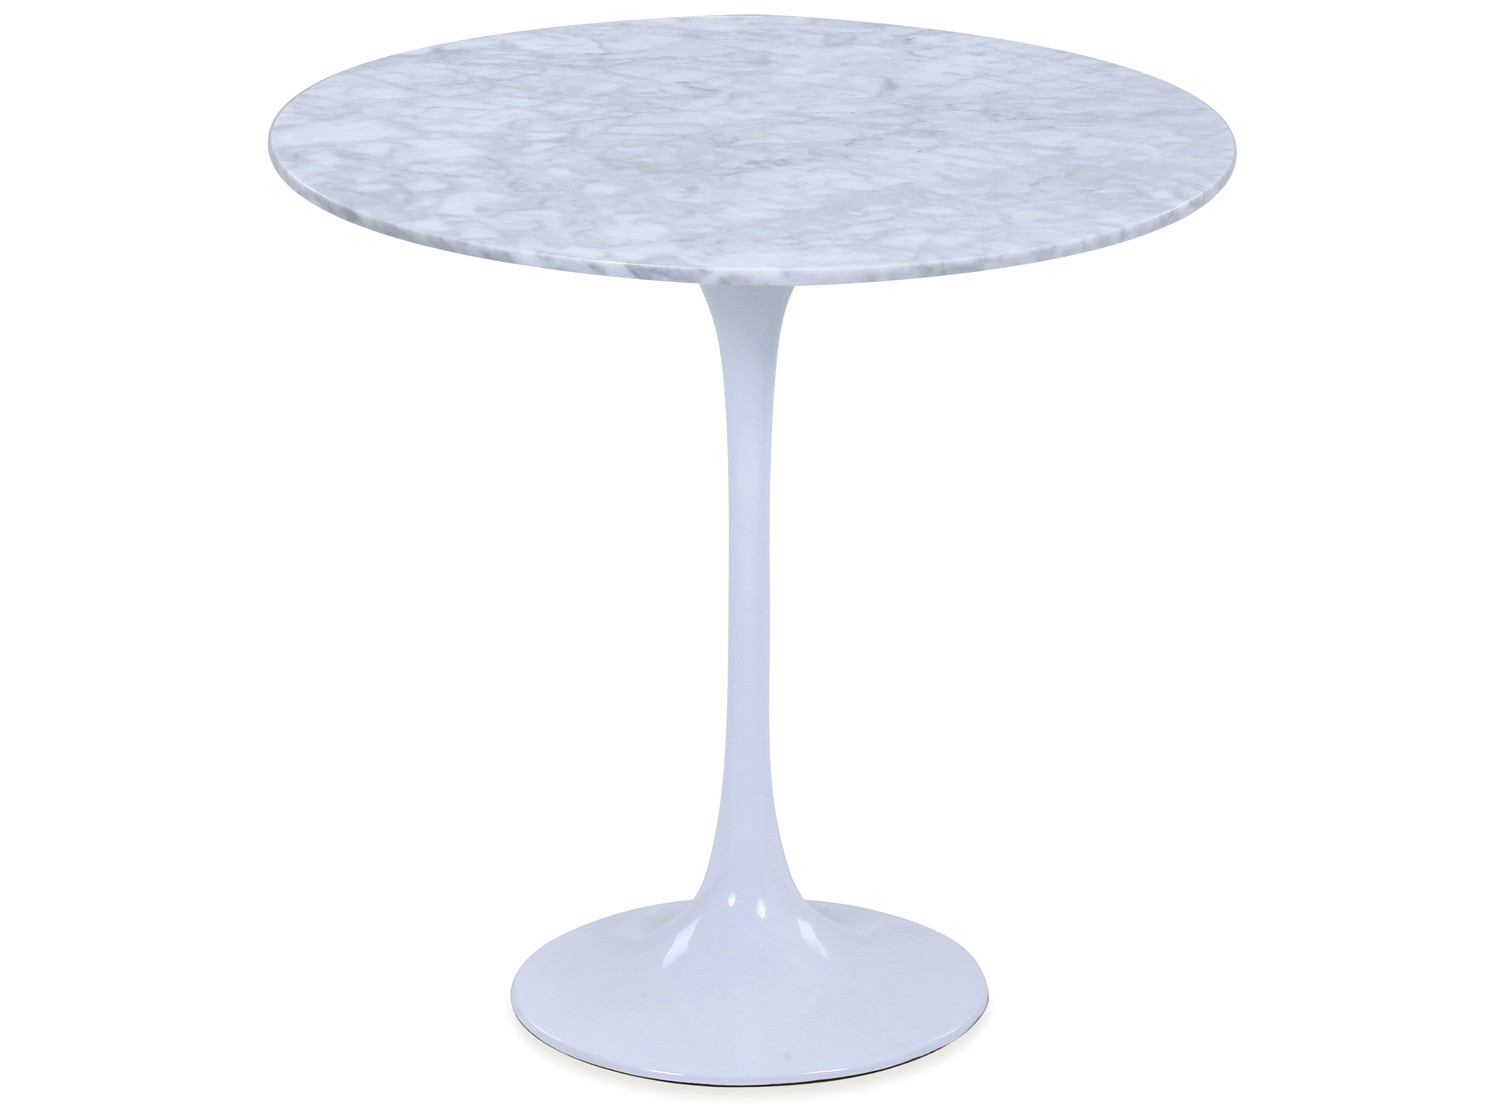 Tulip Table Tulip Side Table By Eero Saarinen (platinum Replica)